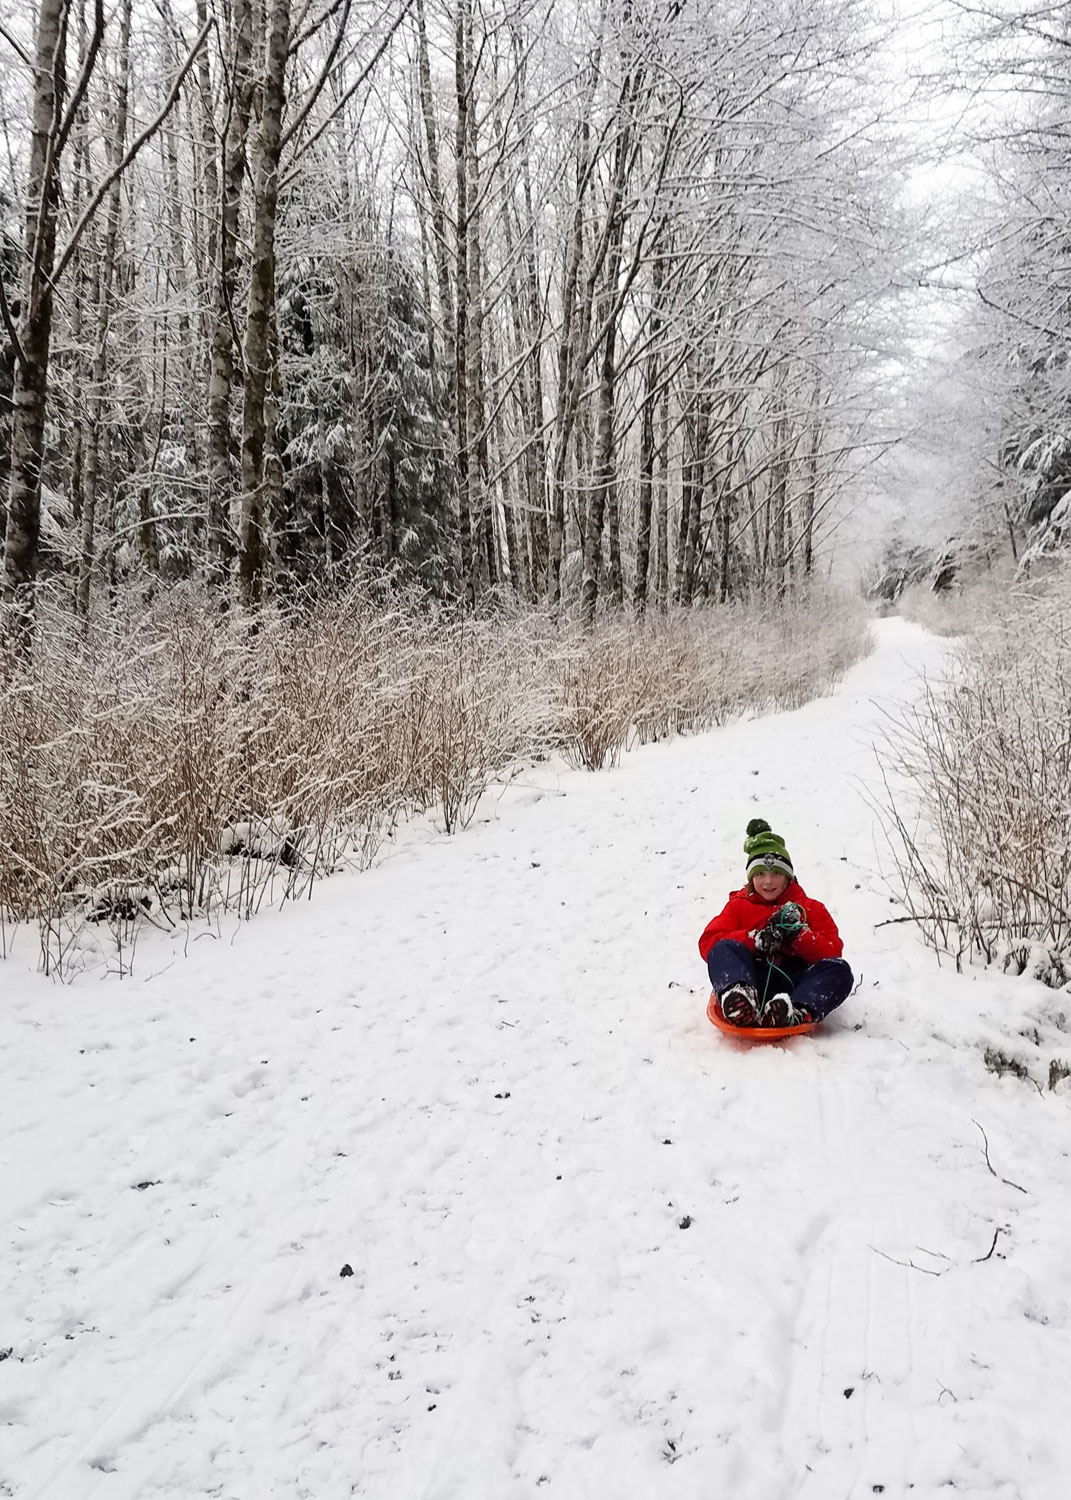 The best thing about snowy days in Ketchikan? Sledding!